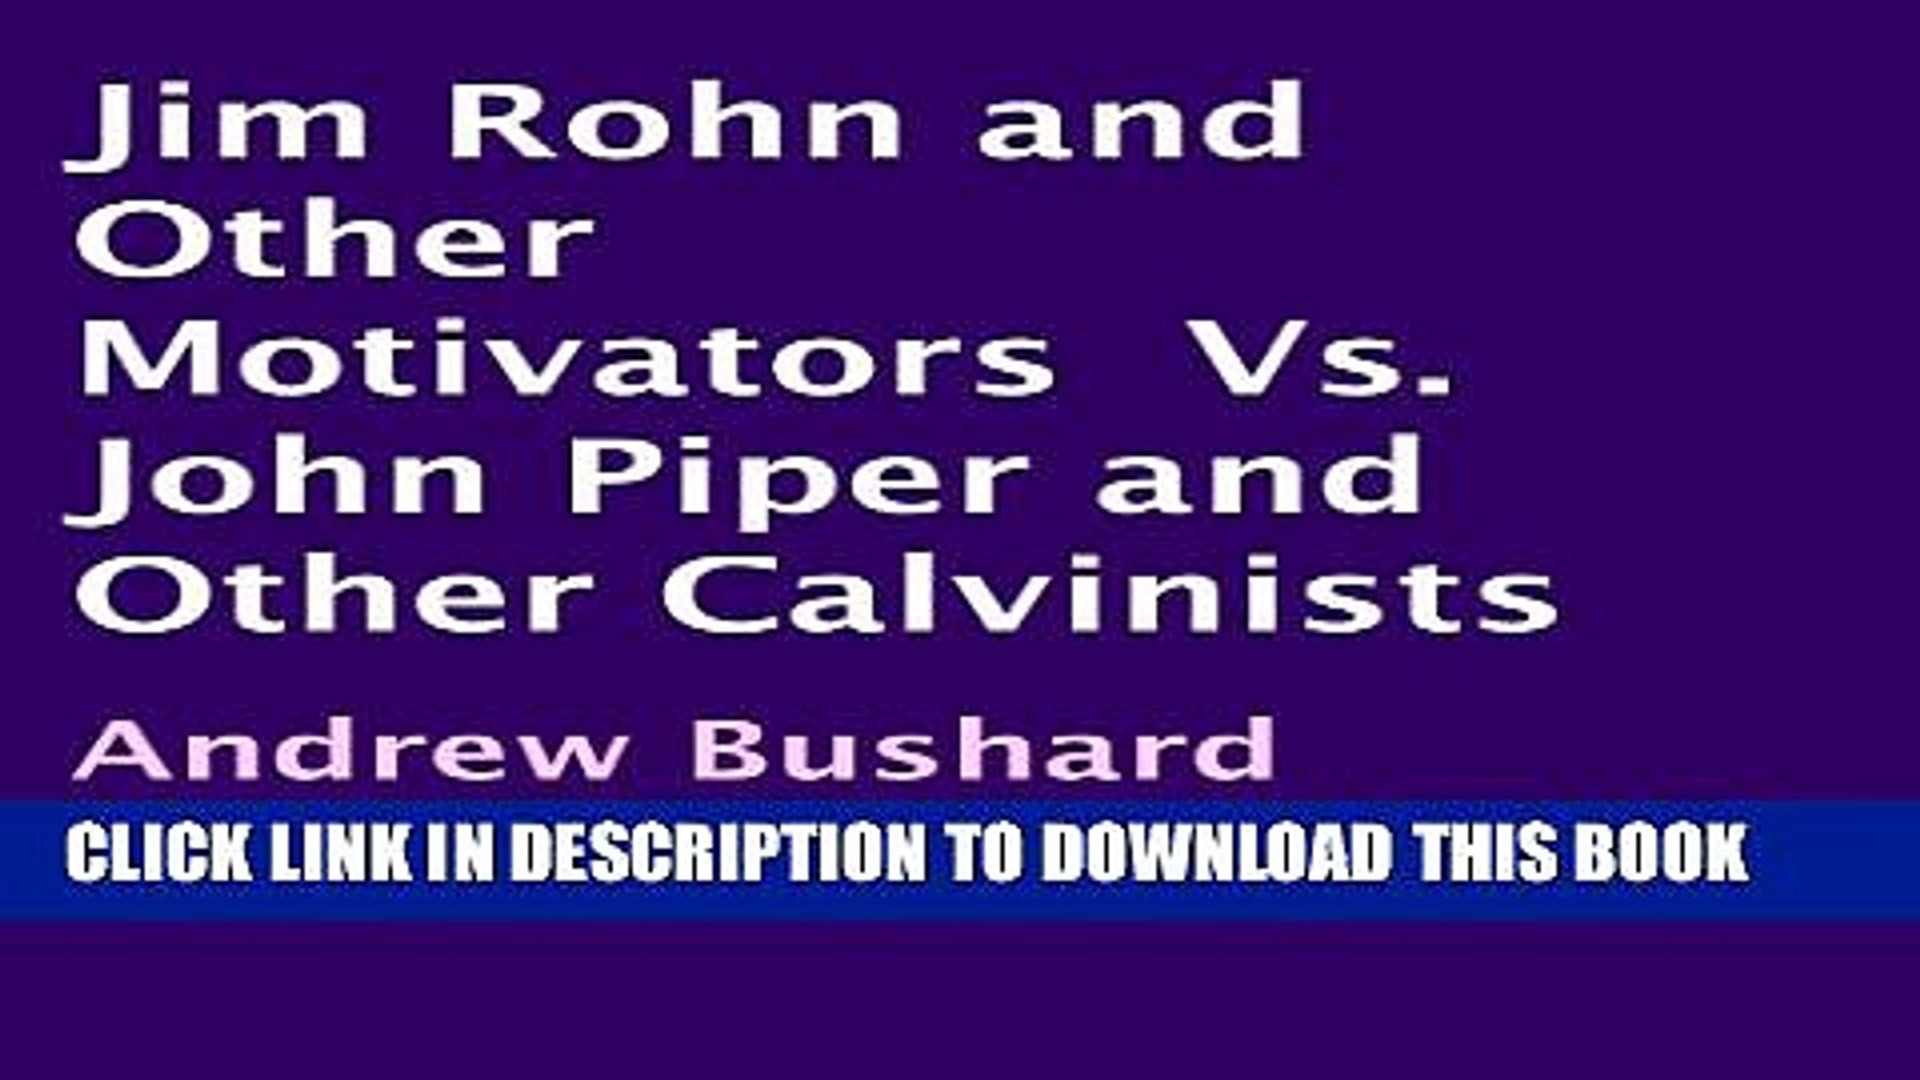 [PDF] Jim Rohn and Other Motivators Vs. John Piper and Other Calvinists Popular Collection